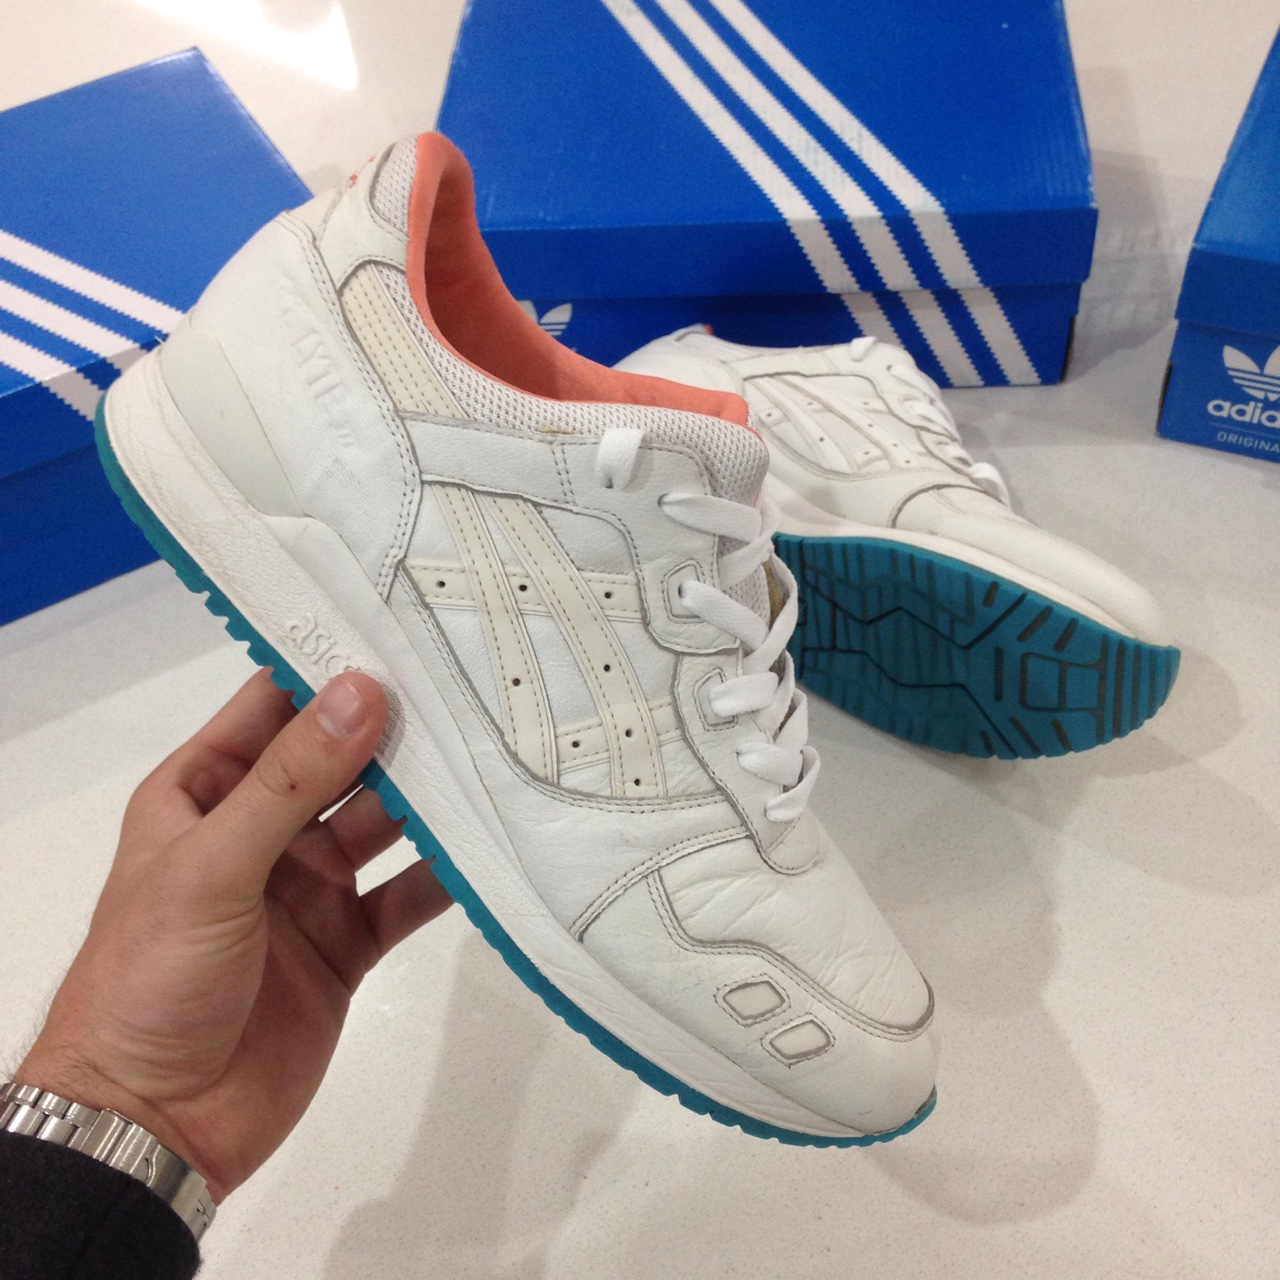 outlet store d136b 7ecb0 Asics Gel Lyte iii Miami Vice | Limited Edition |... - Depop